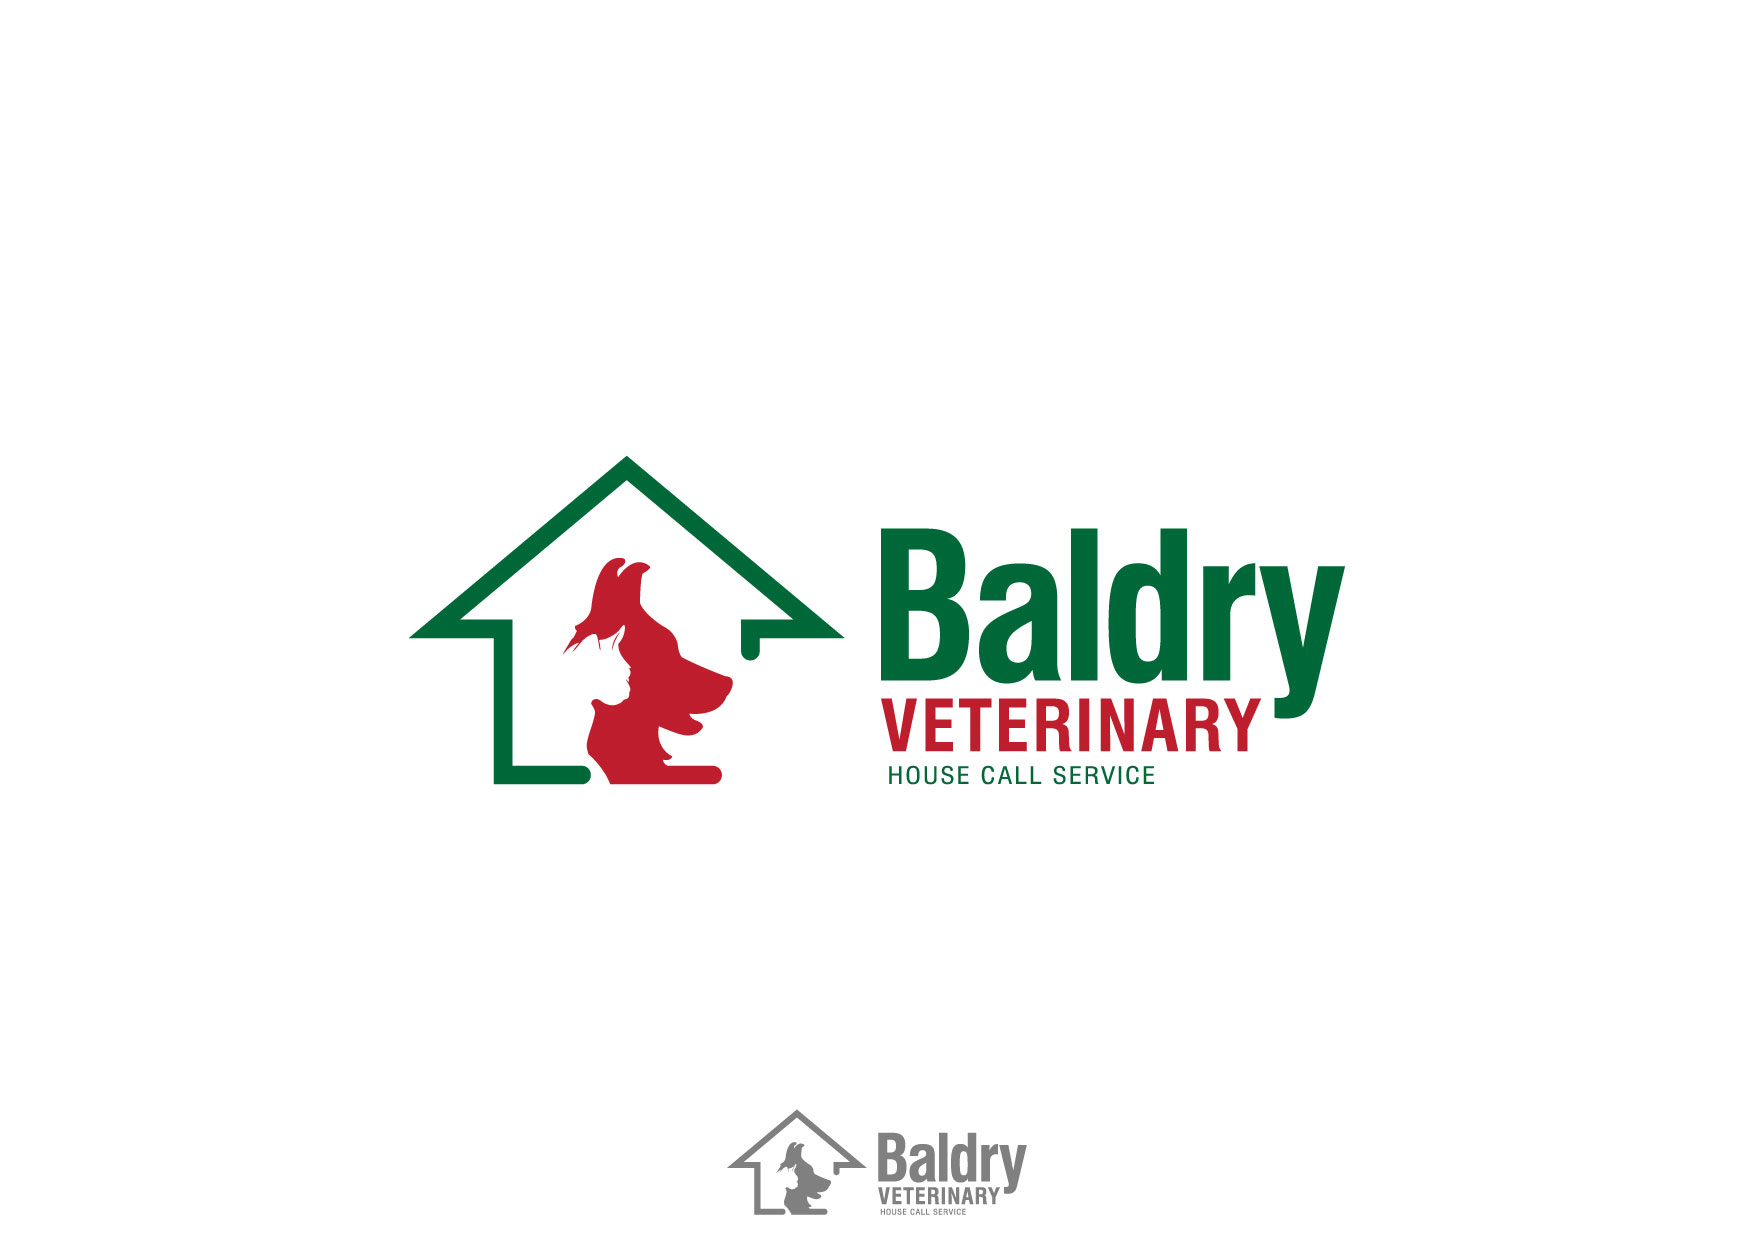 Logo Design by Nurgalih Destianto - Entry No. 33 in the Logo Design Contest Captivating Logo Design for Baldry Veterinary House Call Service.